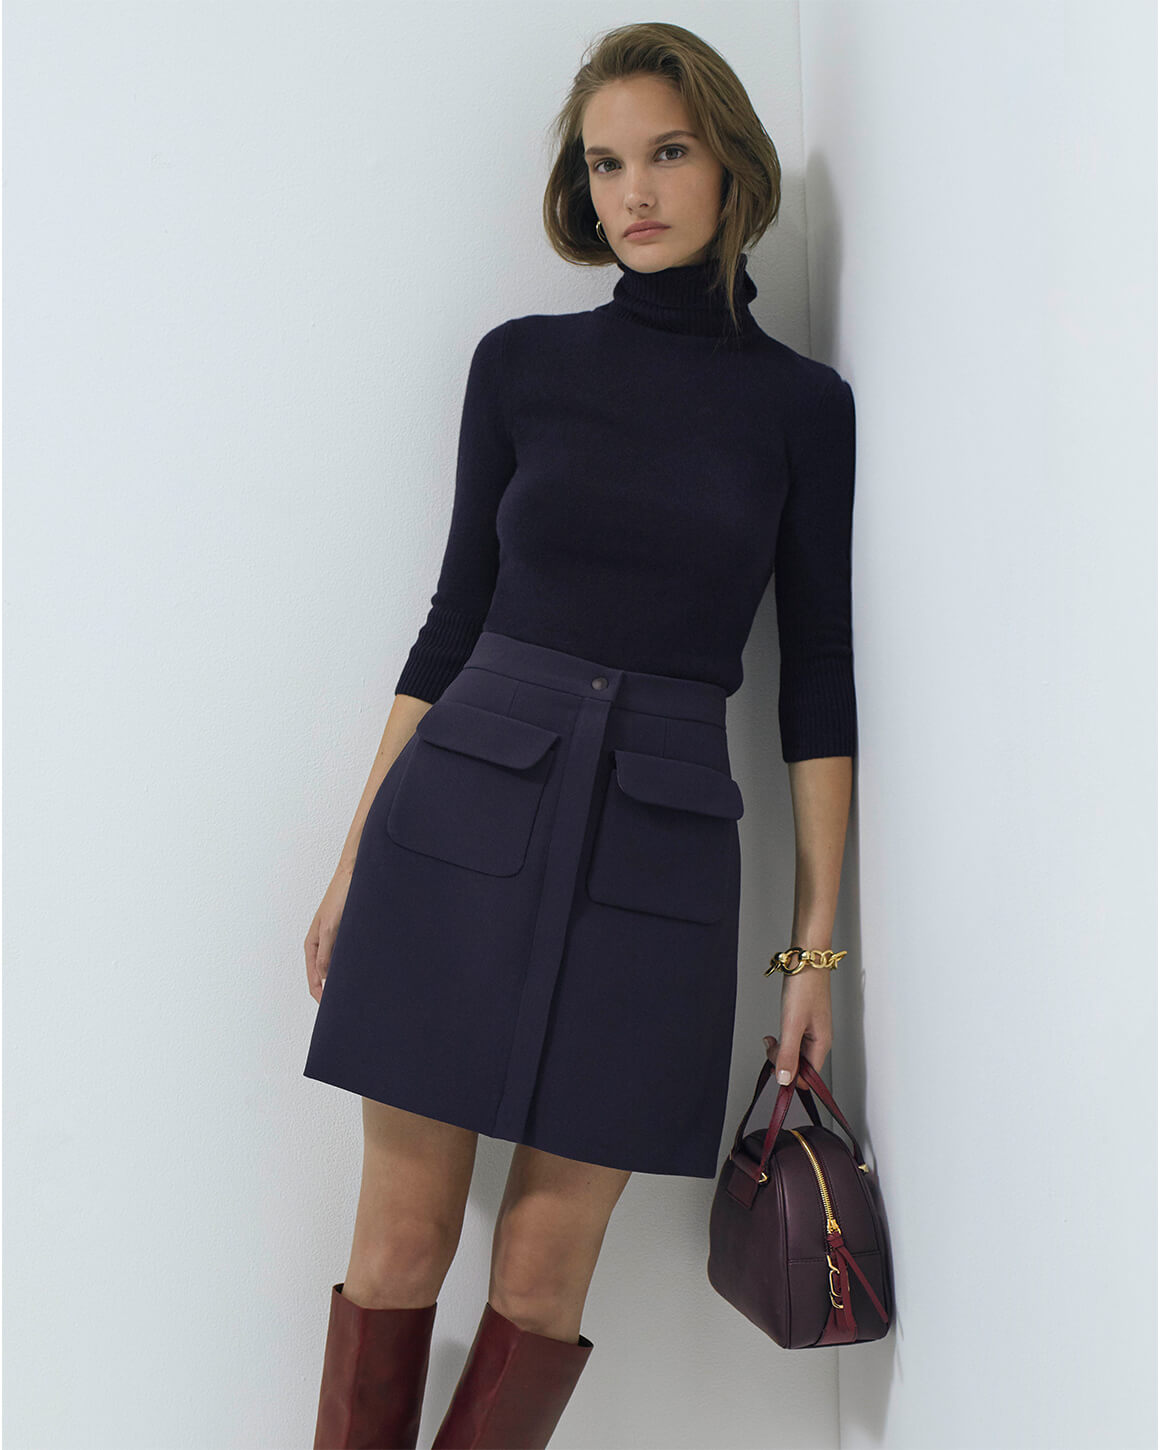 G. Label Midlength Leather Skirt